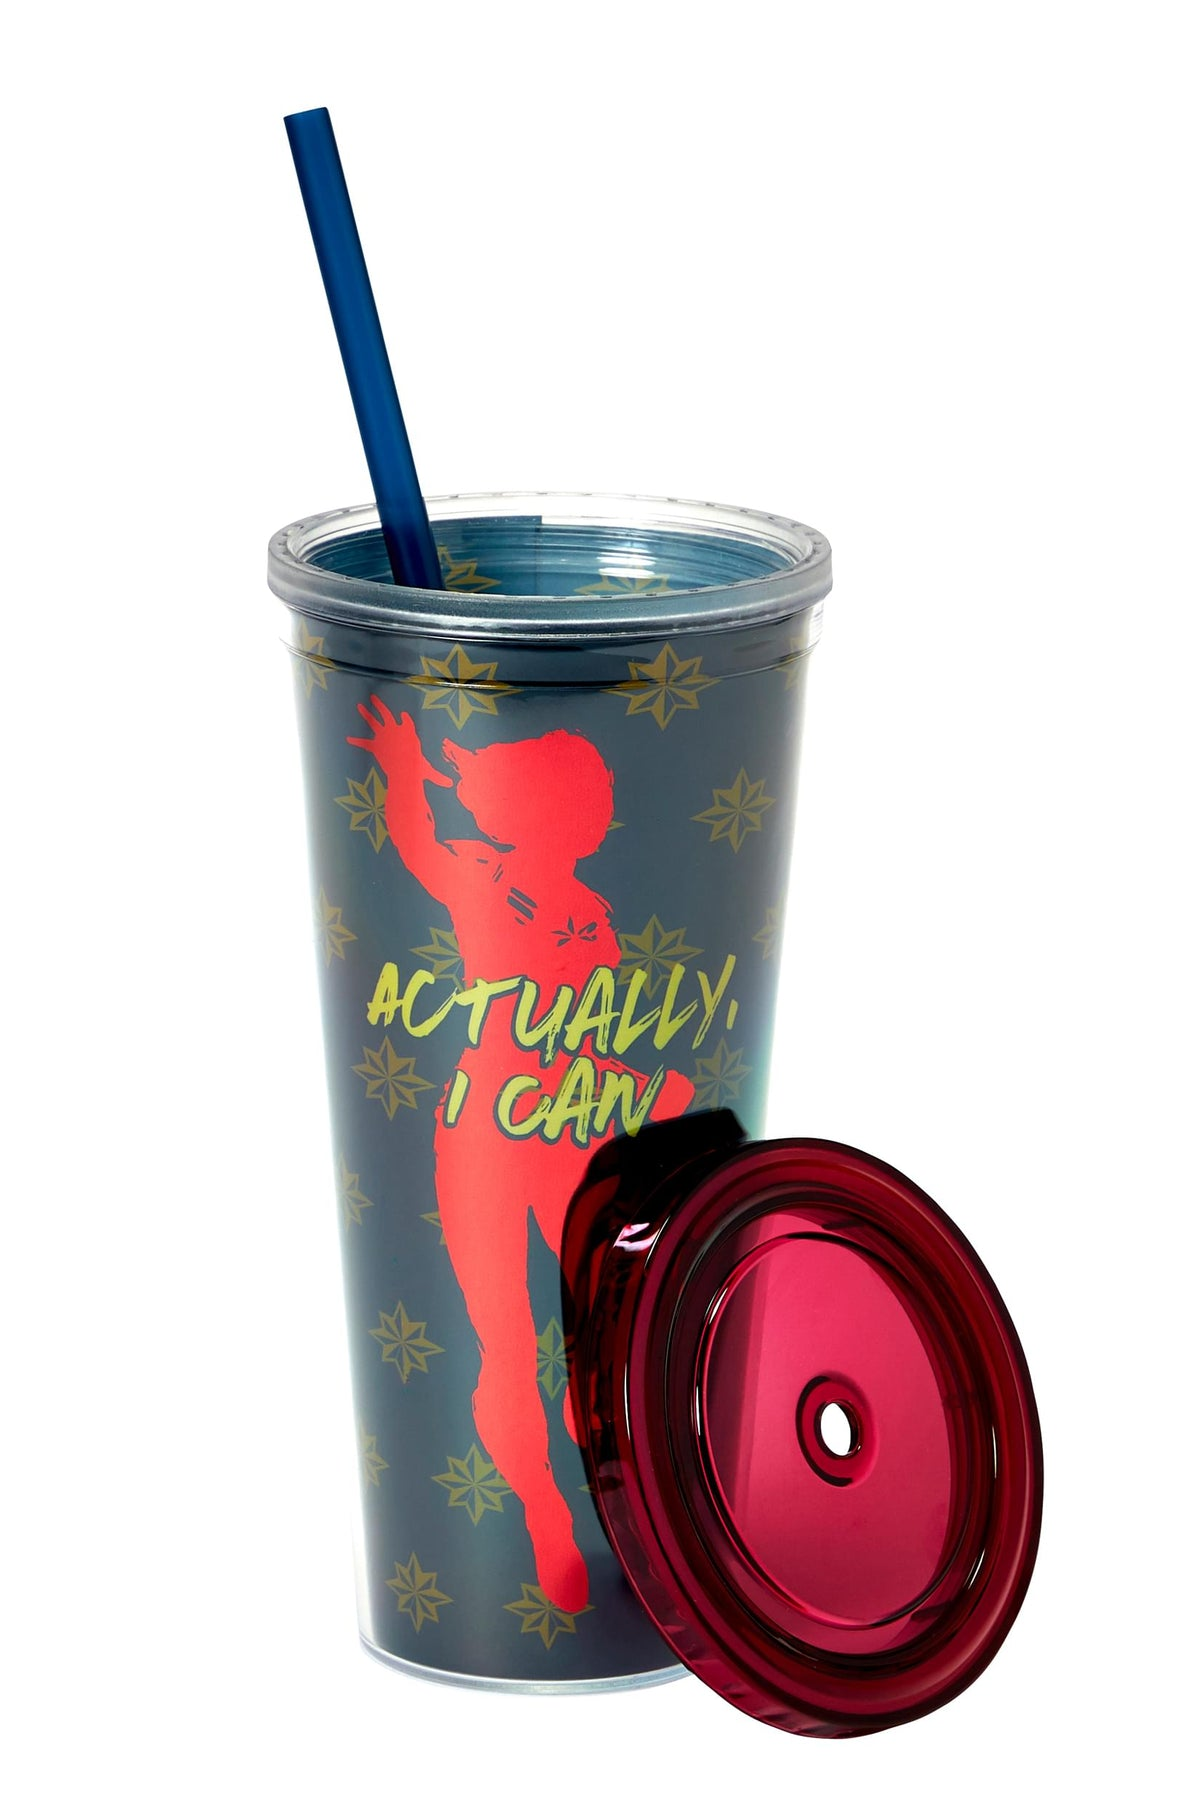 Marvel's Captain Marvel Actually I Can 16-Oz PVC Tumbler w/ Lid and Straw